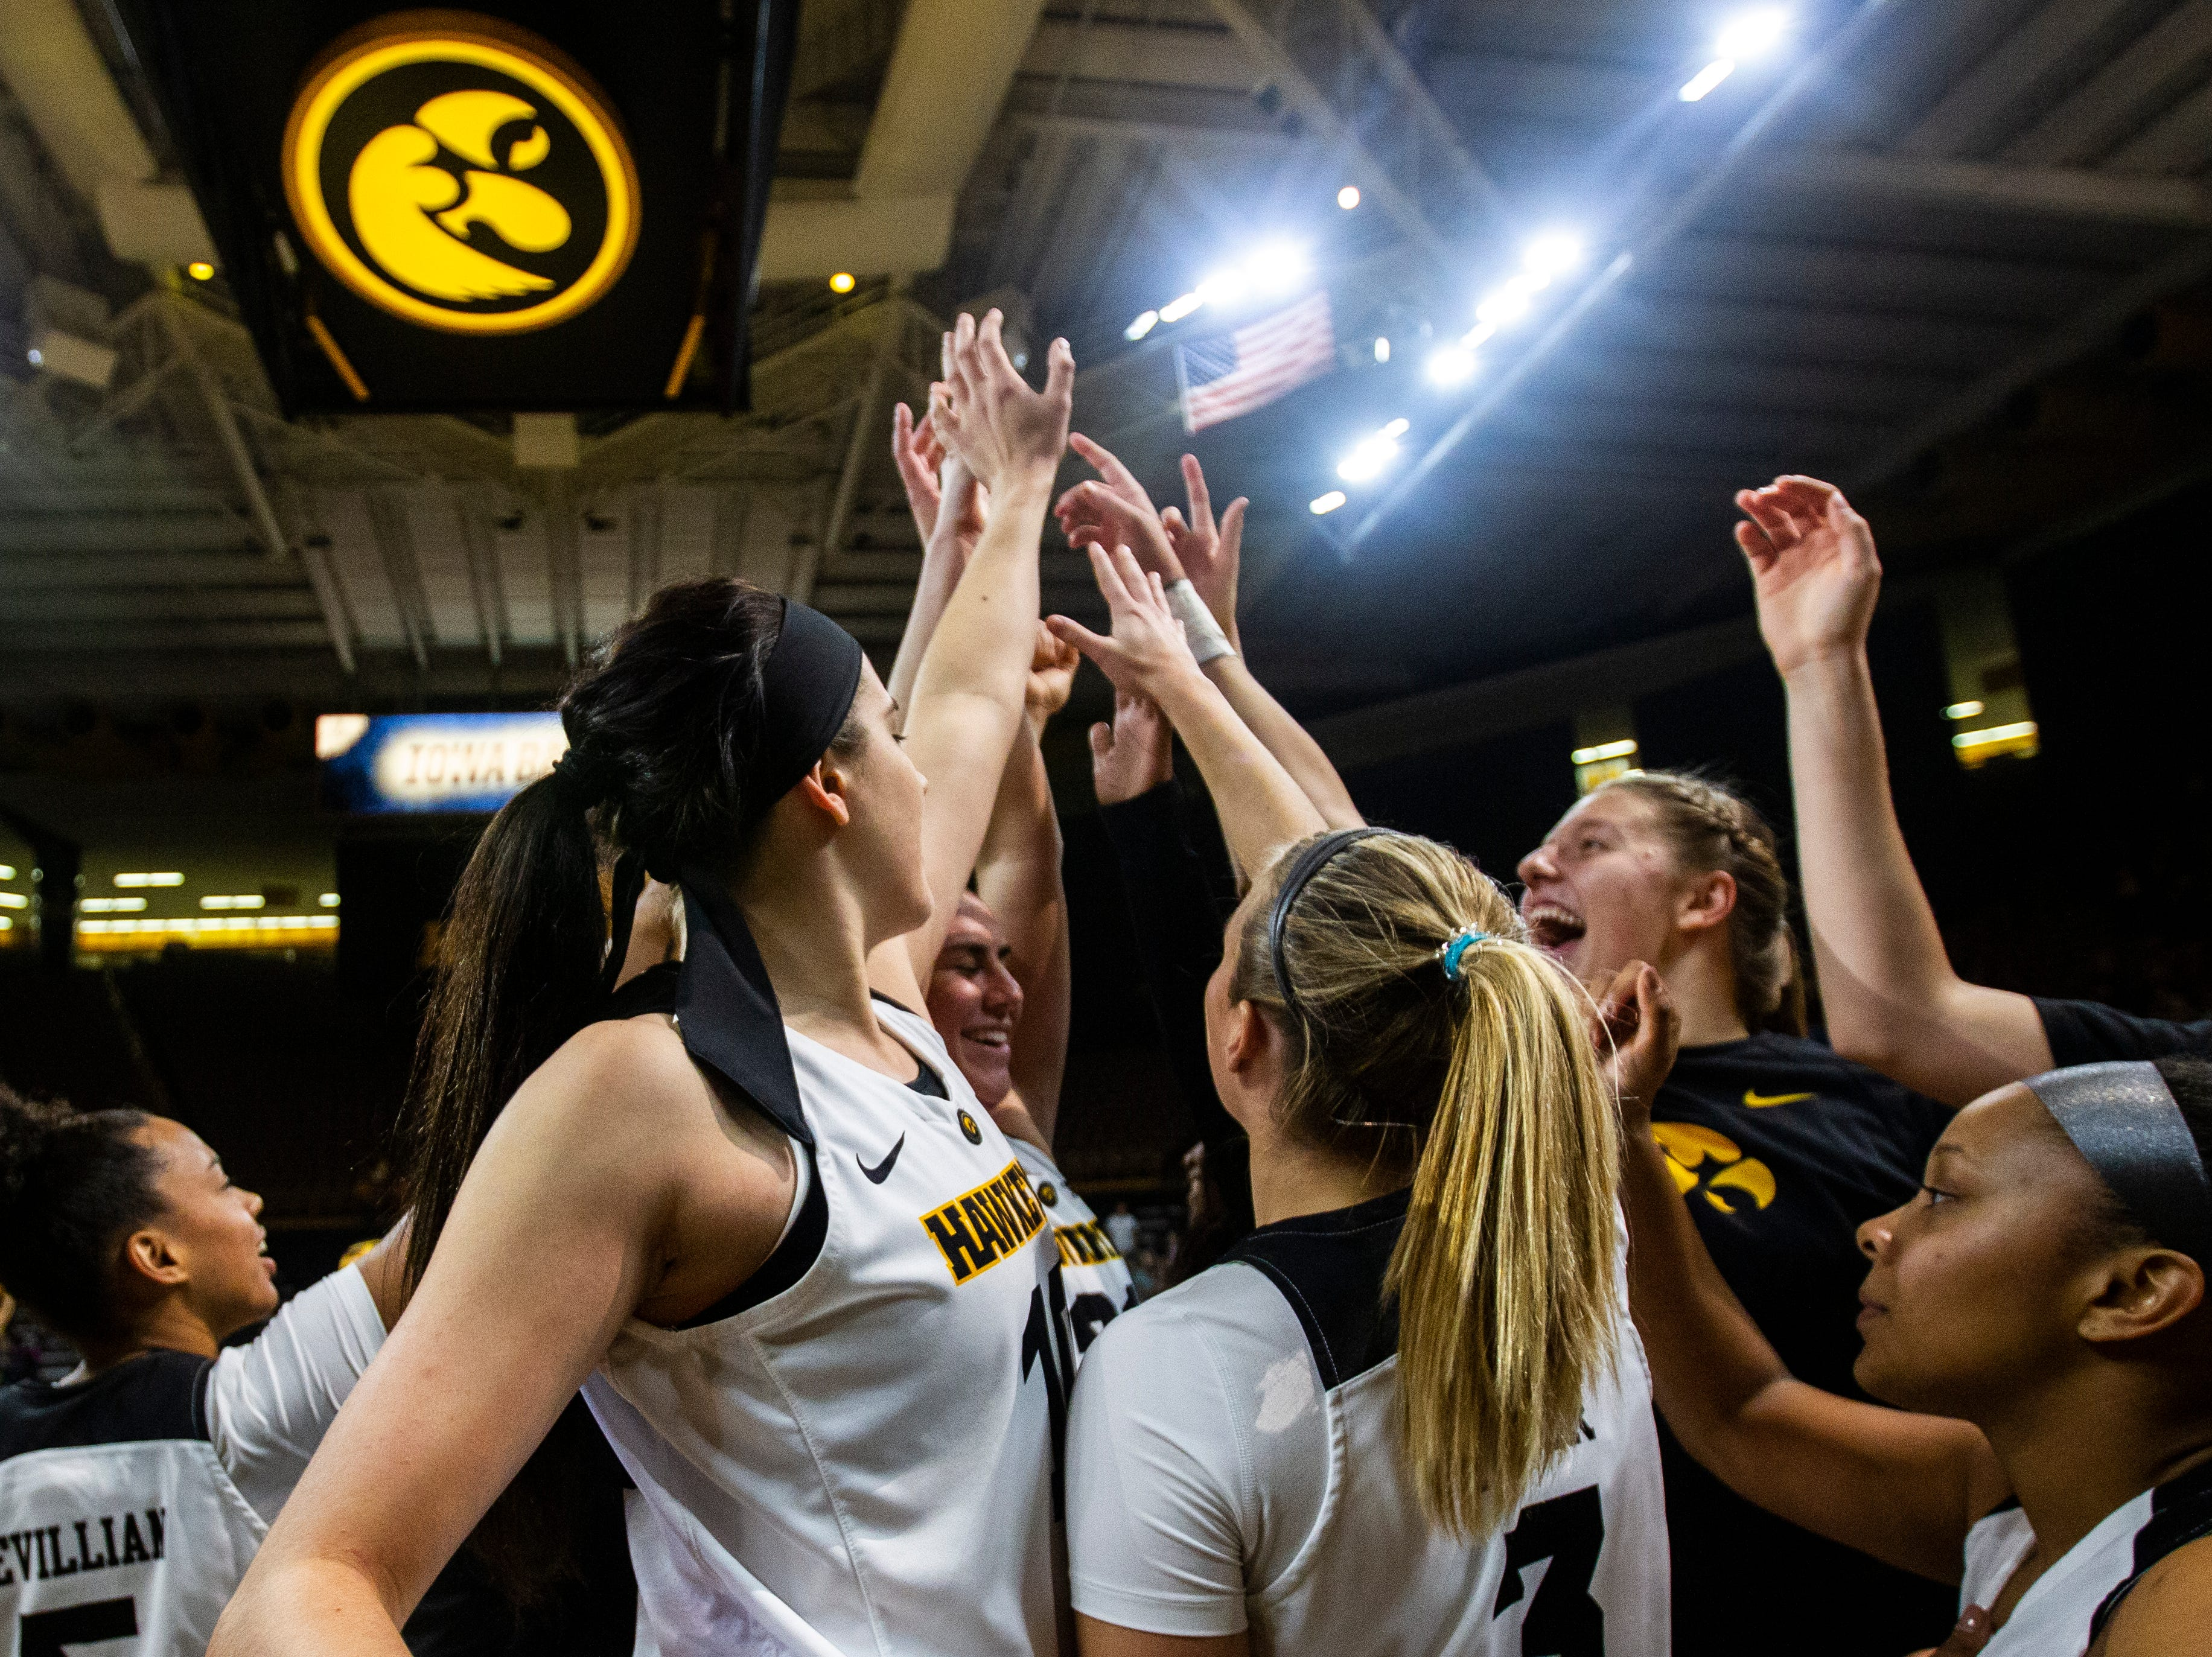 Iowa forward Megan Gustafson (10) huddles up with teammates before a women's basketball exhibition basketball game on Tuesday, Nov. 6, 2018, at Carver-Hawkeye Arena in Iowa City.